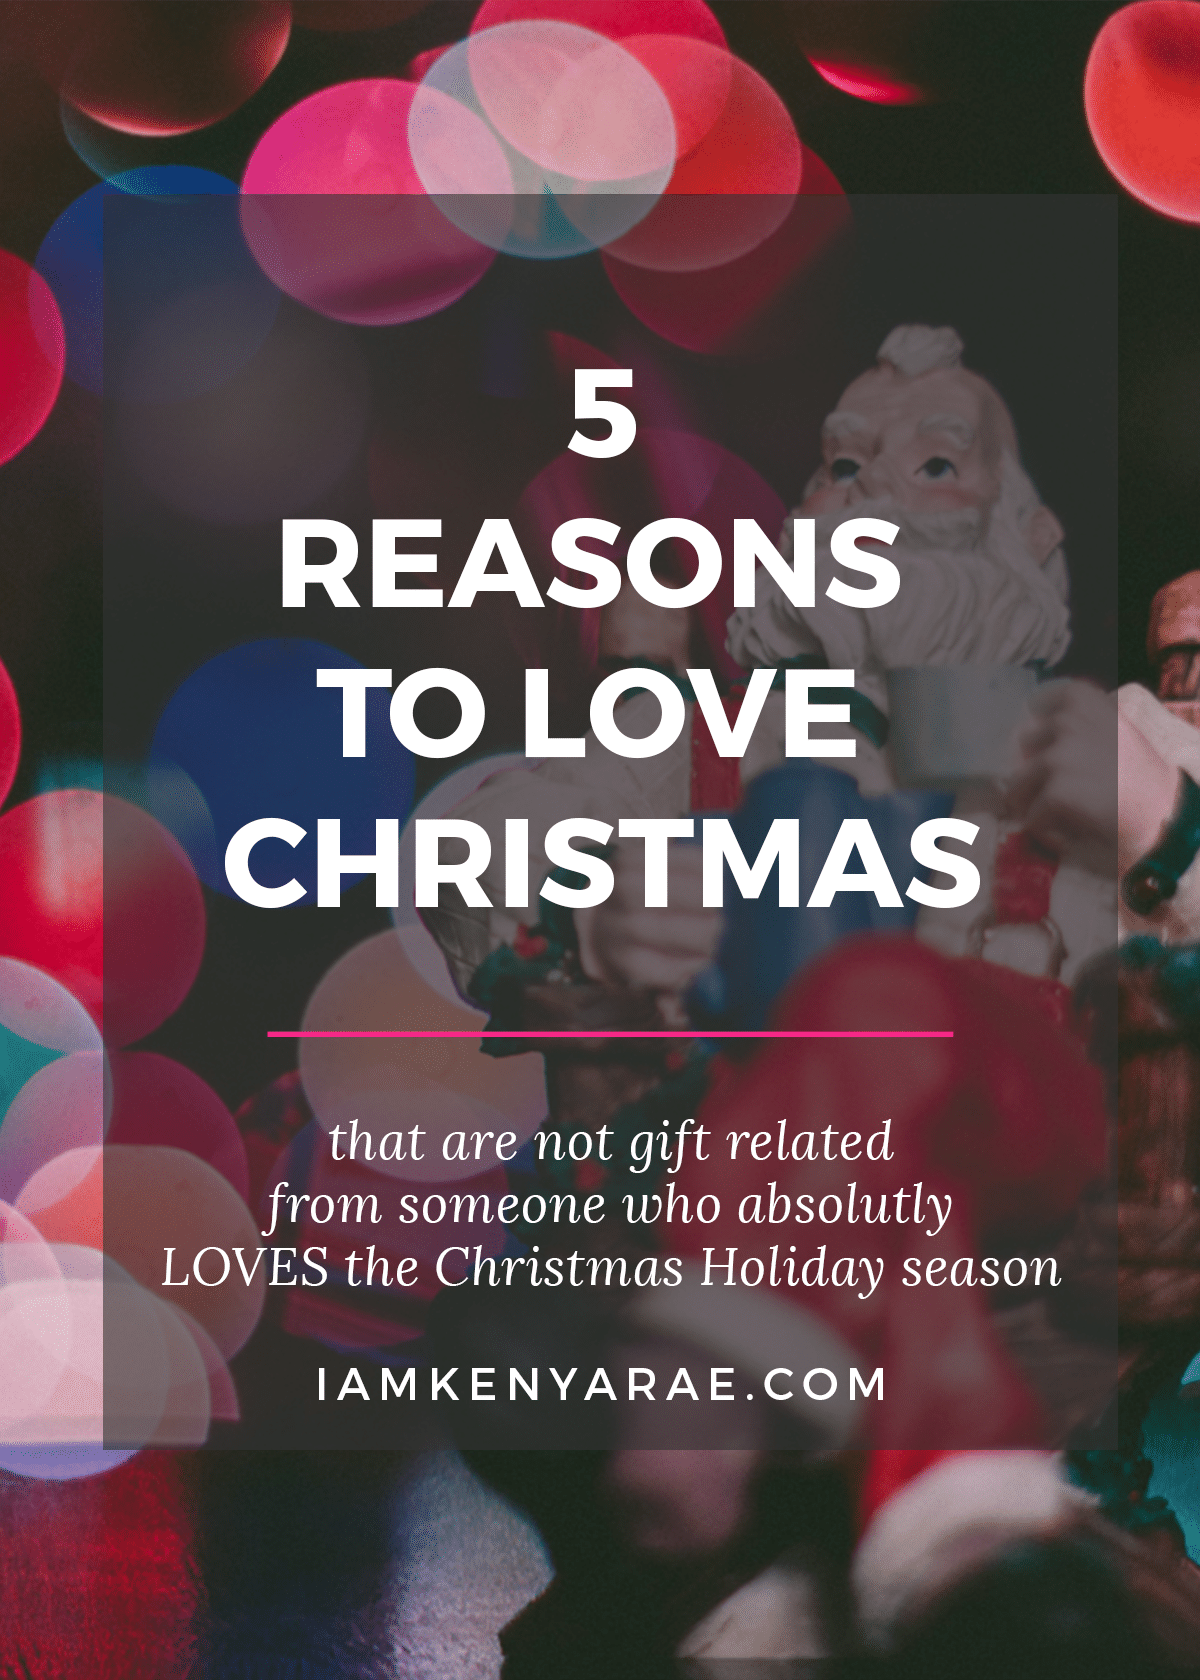 5 reasons to love christmas